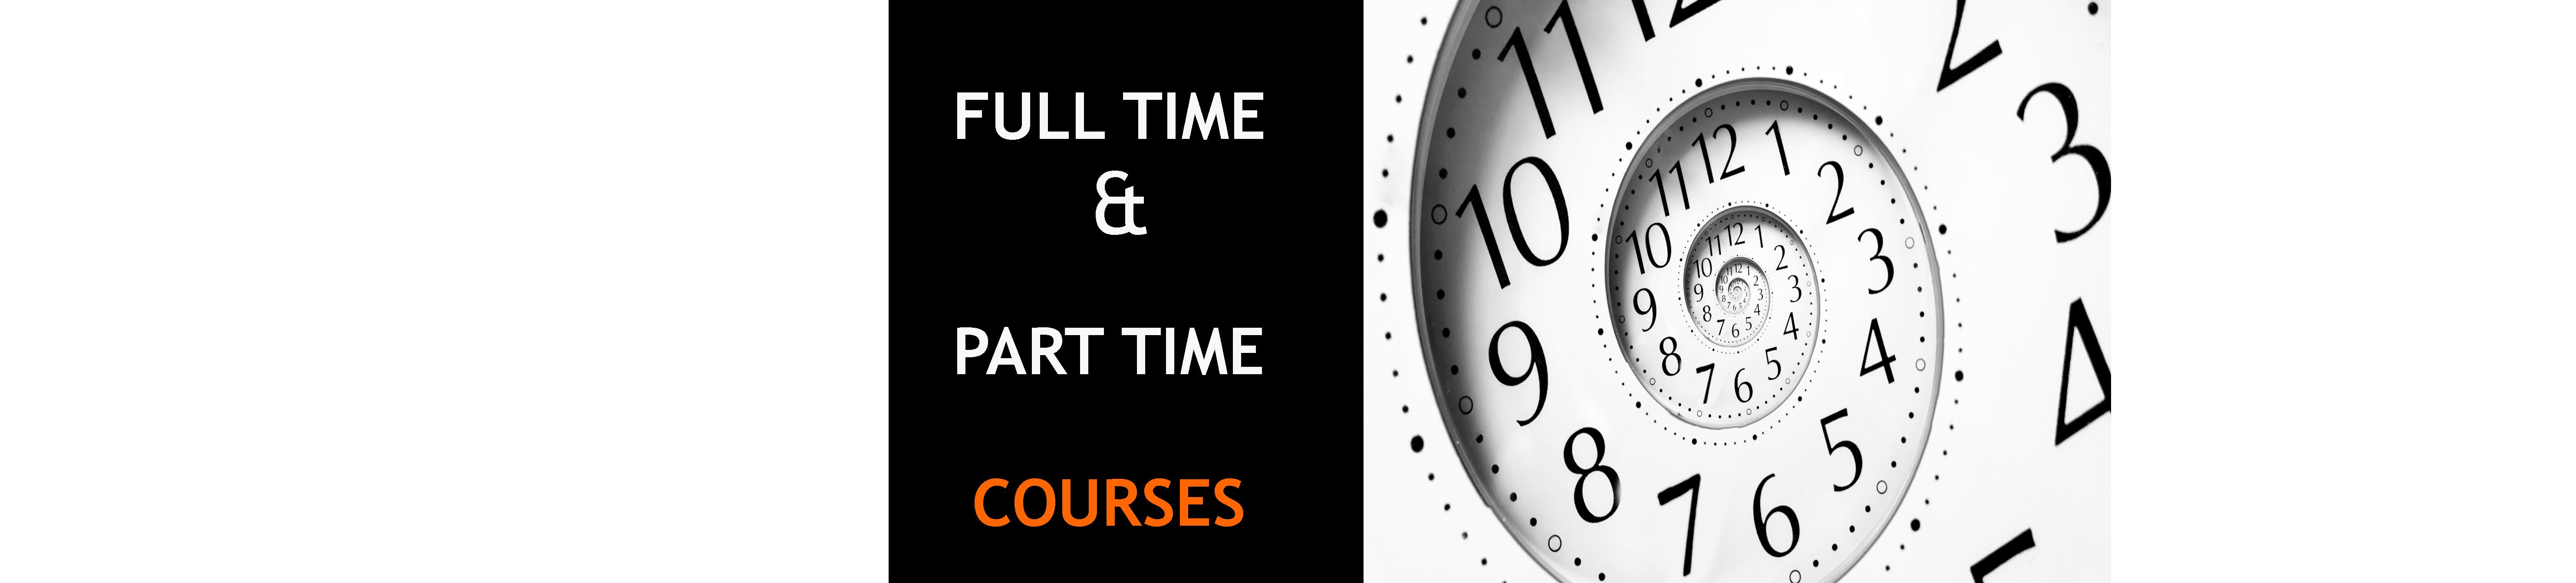 Full-time-and-part-time-courses-slide